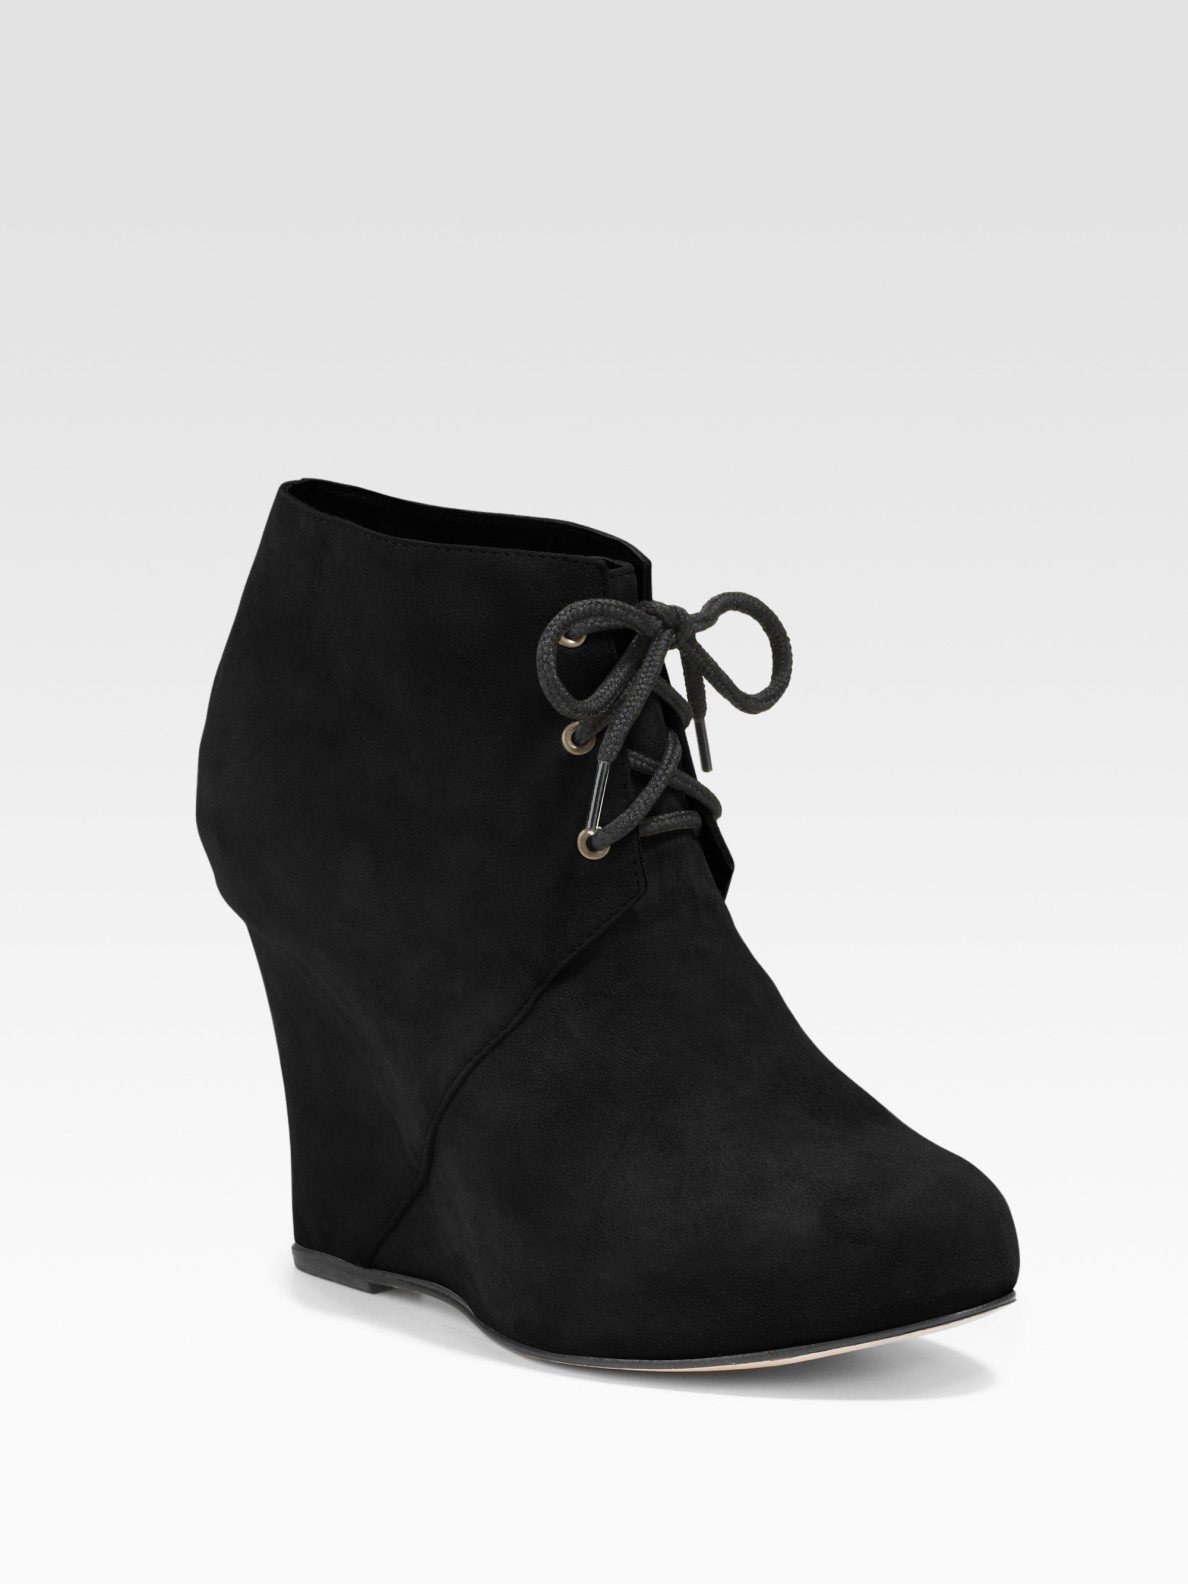 Free shipping on women's booties at urgut.ga Shop all types of ankle boots, chelsea boots, and short boots for women from the best brands including Steve Madden, Sam Edelman, Vince Camuto and more. Totally free shipping & returns.